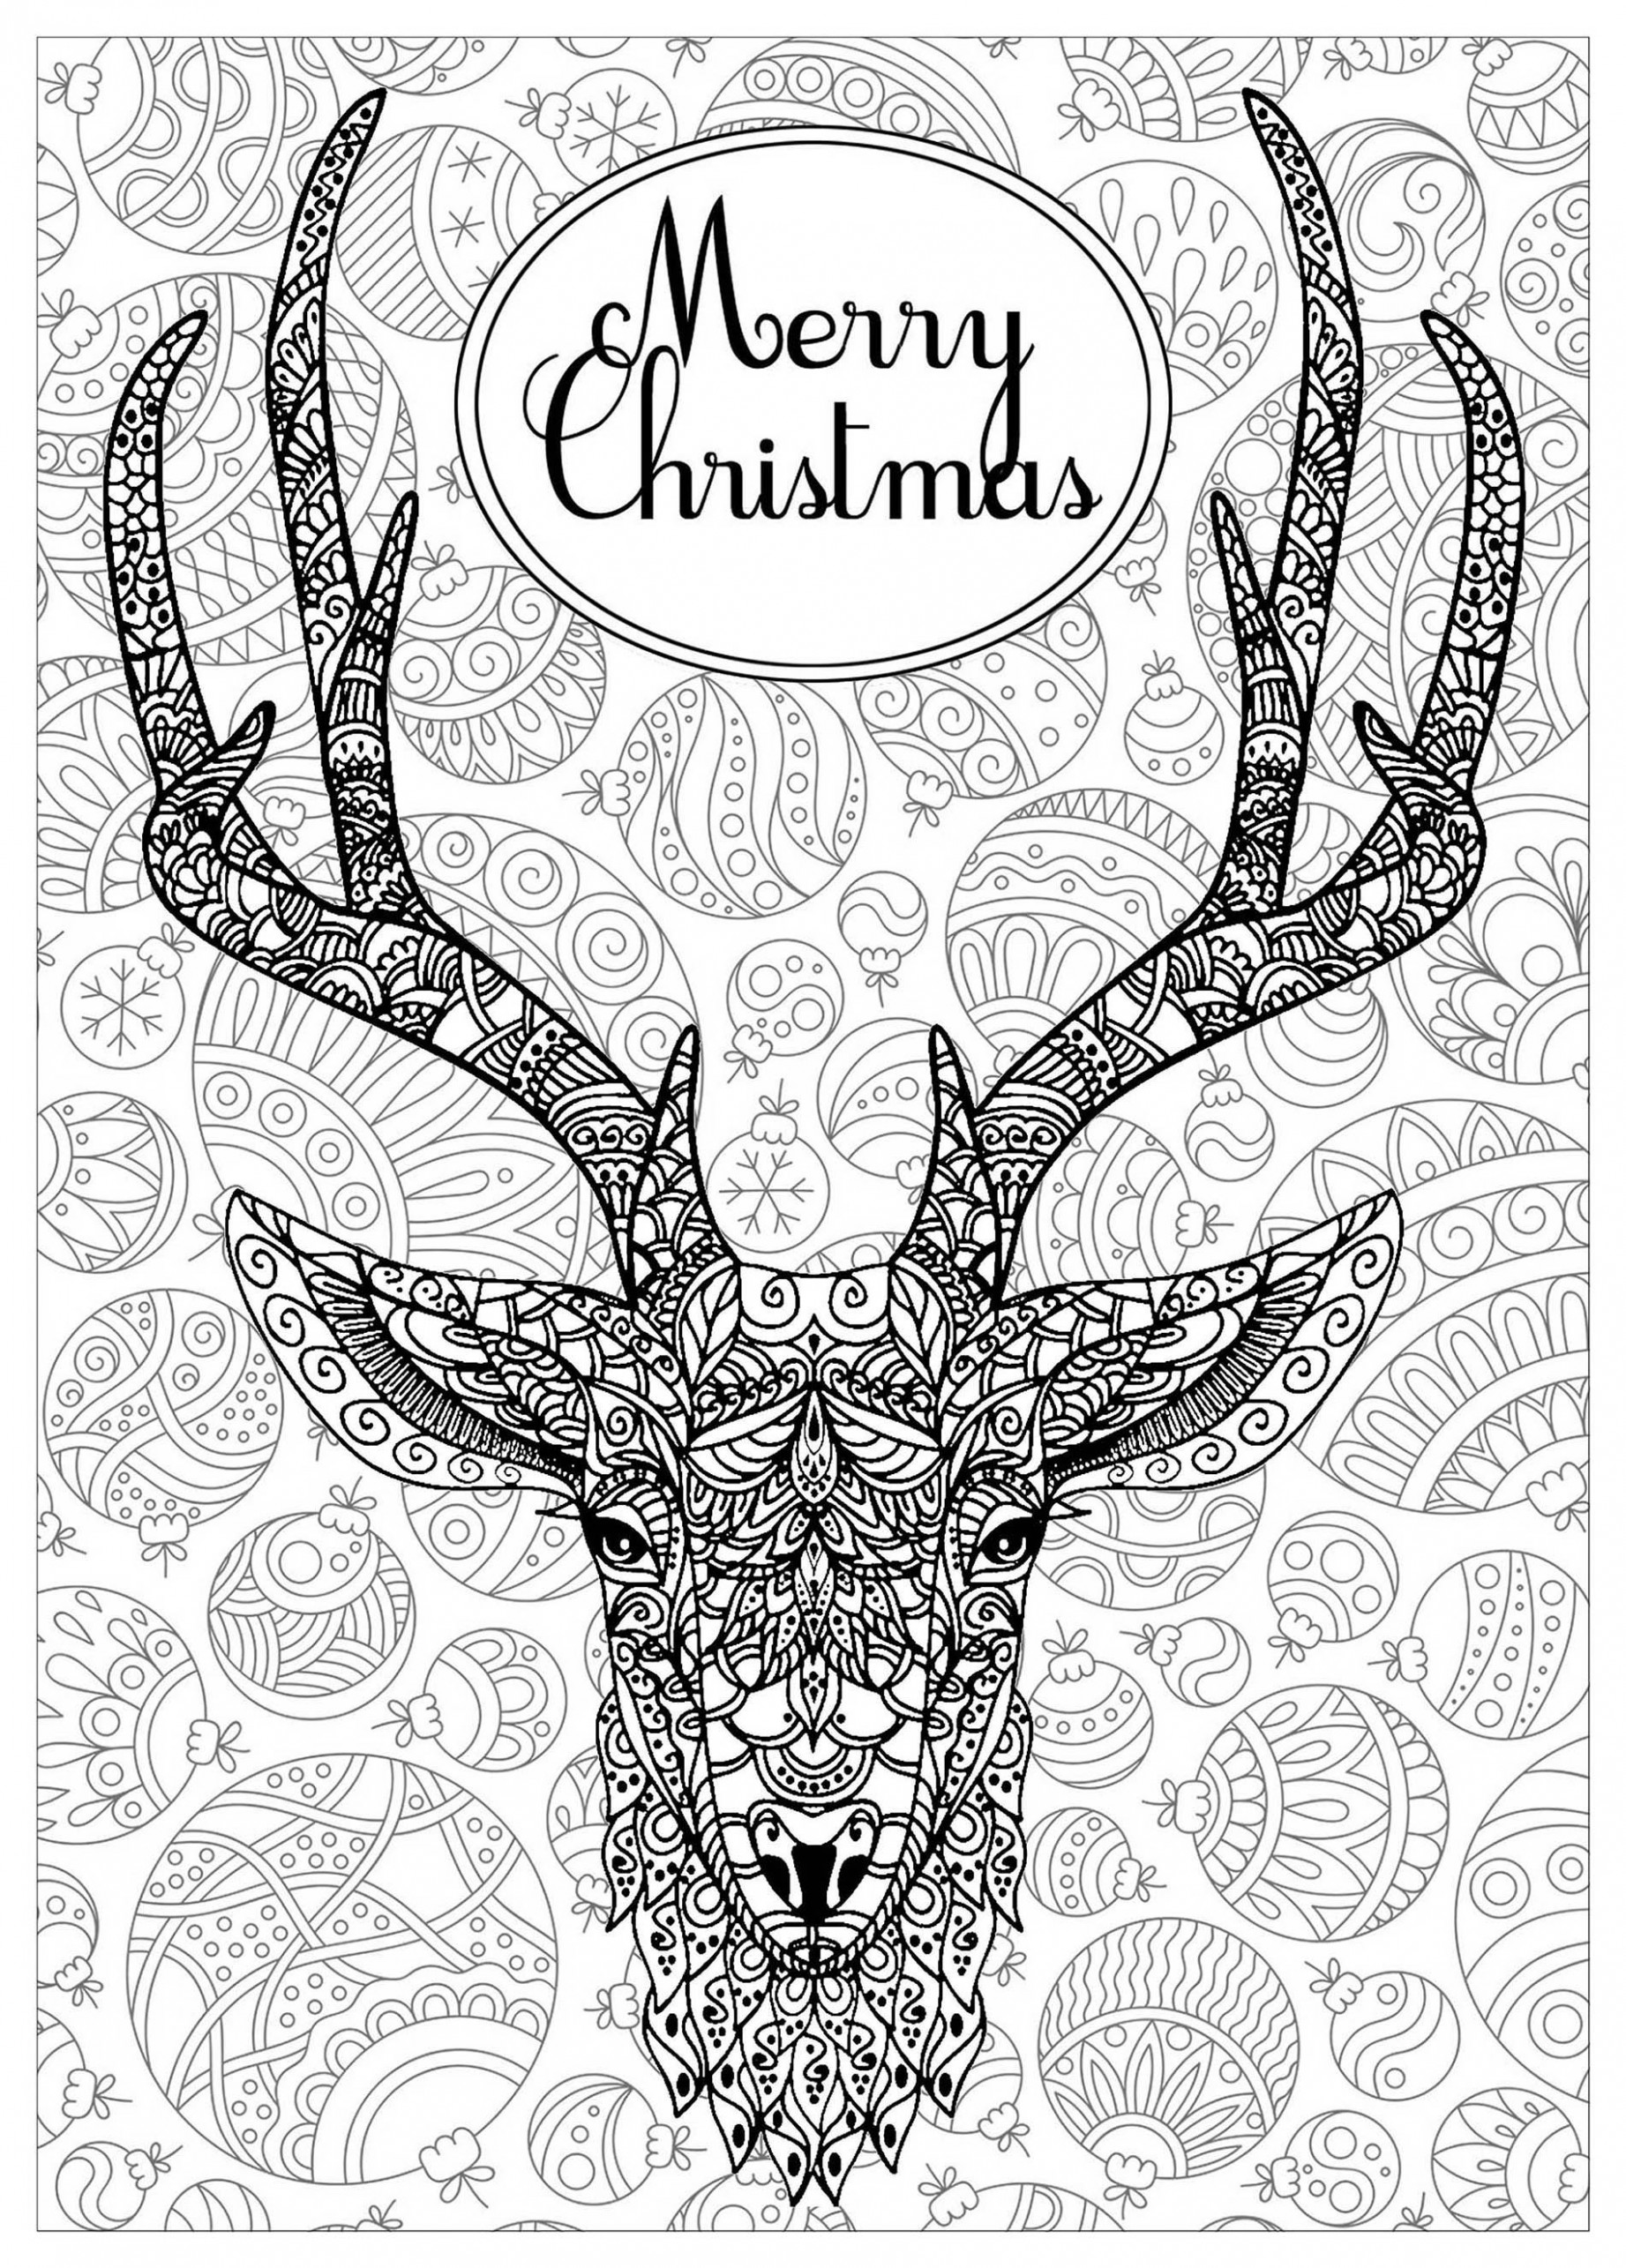 Deer with text and background – Christmas Adult Coloring Pages – Christmas Deer Coloring Pages